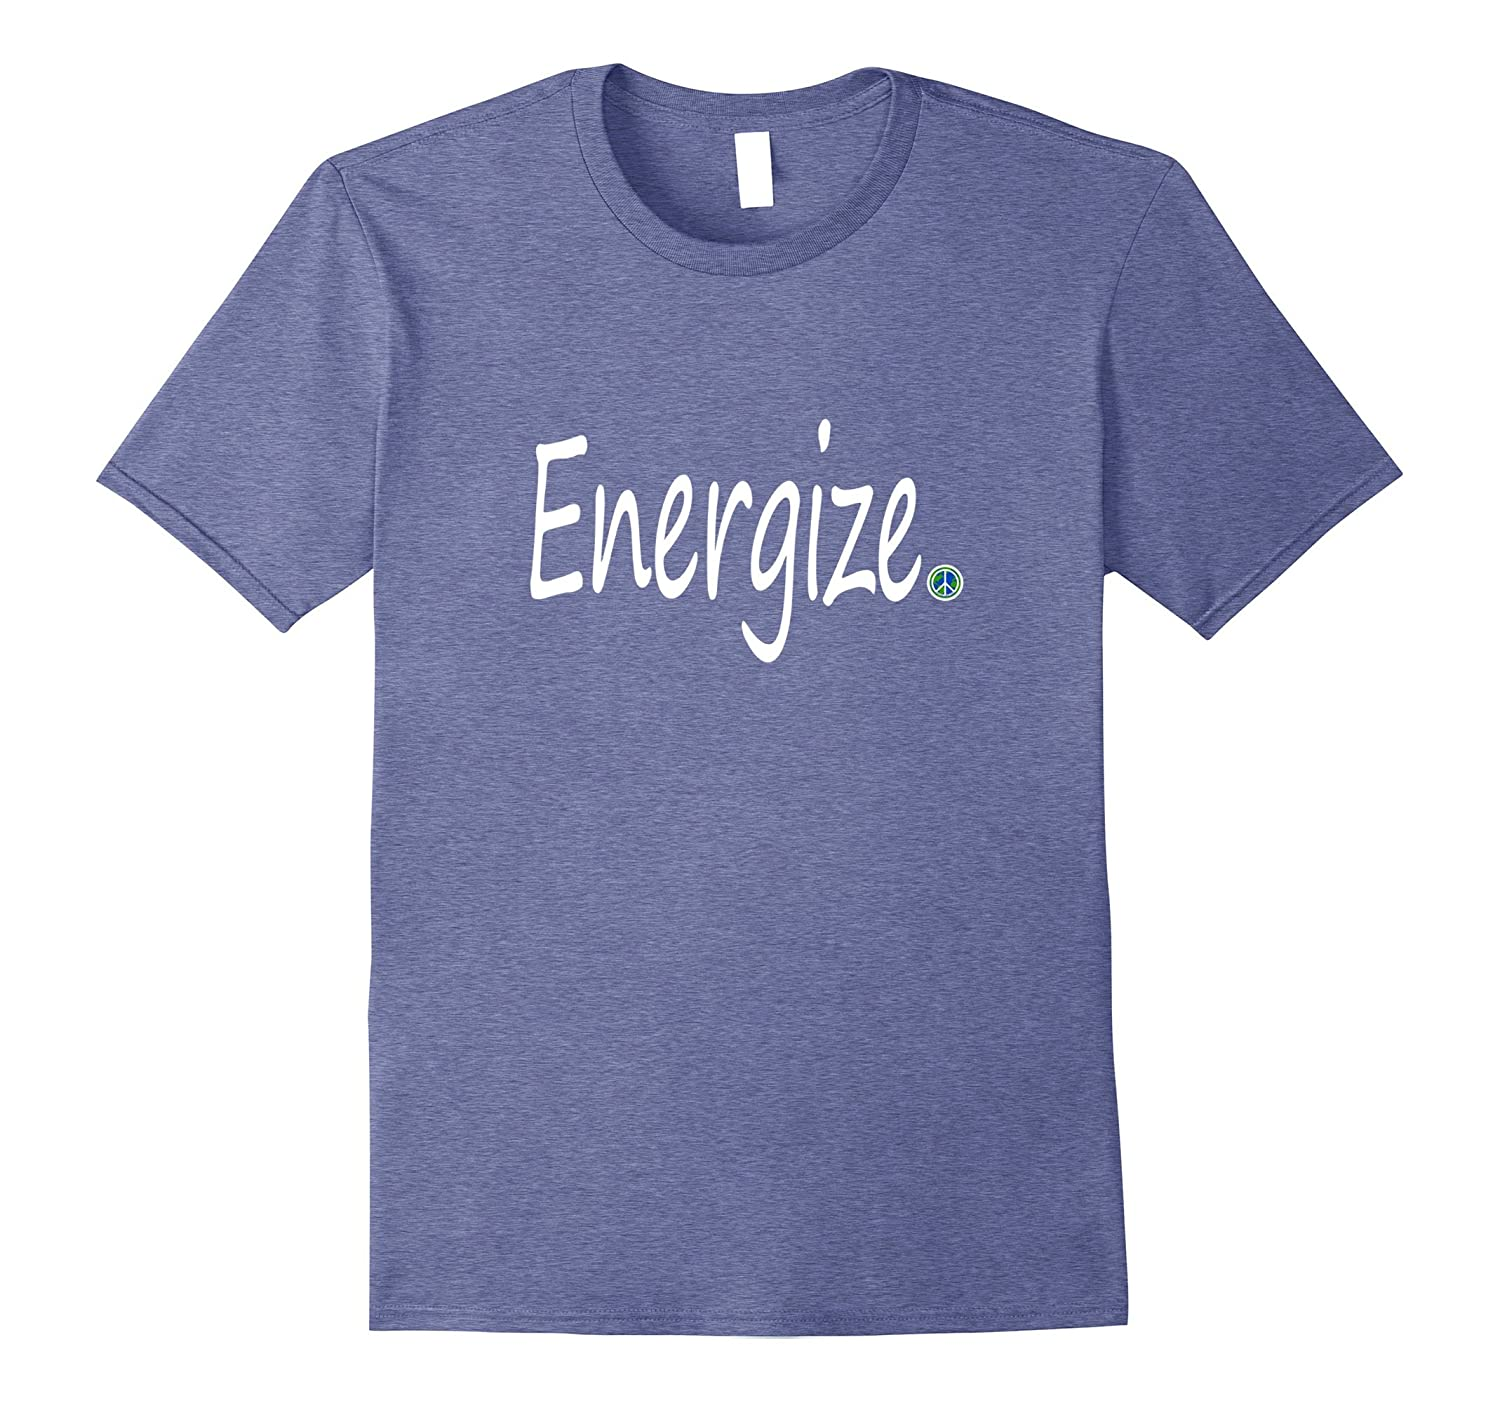 Inspirational Journey Tshirts Energize World Peace Point-CD